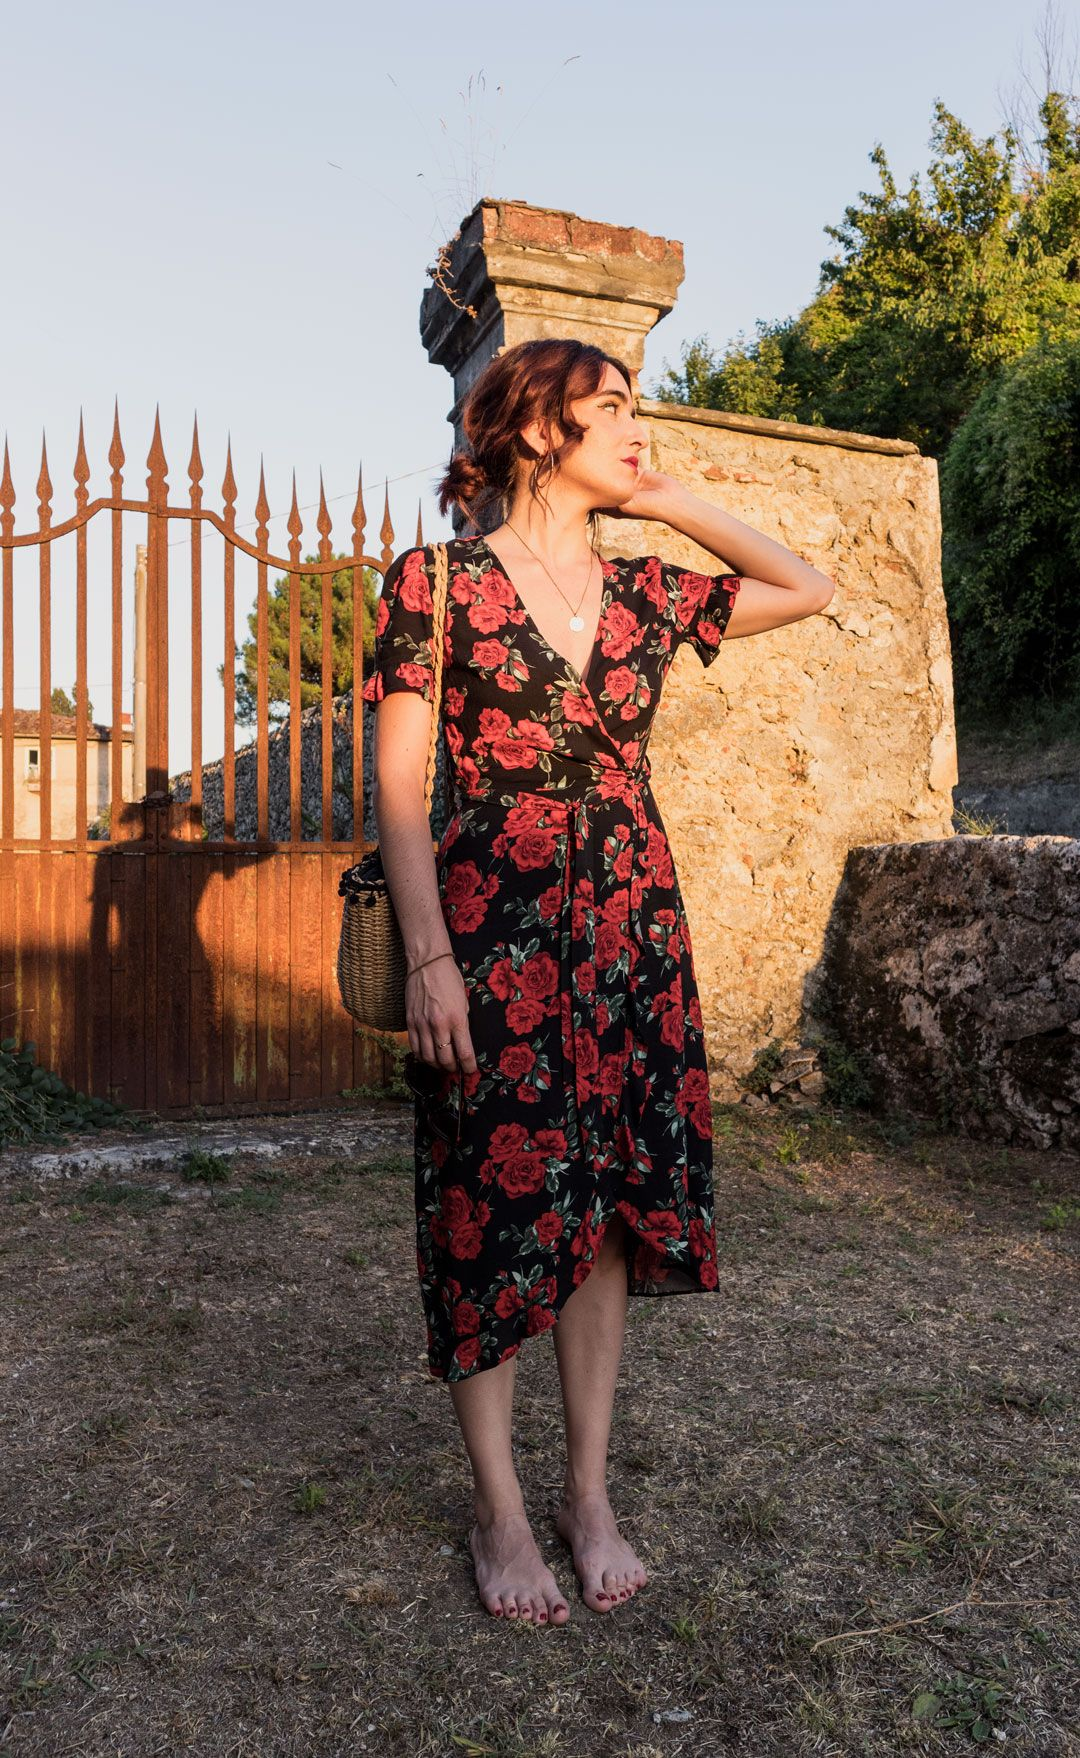 My Italian trip and how to dress for a hot summer in Tuscany   Chic Italian style   Sexy floral dress   Chic look   Summer outfit inspiration   Red flowers   Ruffled dress   Straw bag   Raffia bag   She talks Glam   Saida Antolin   Spanish Blogger   Italian Fashion